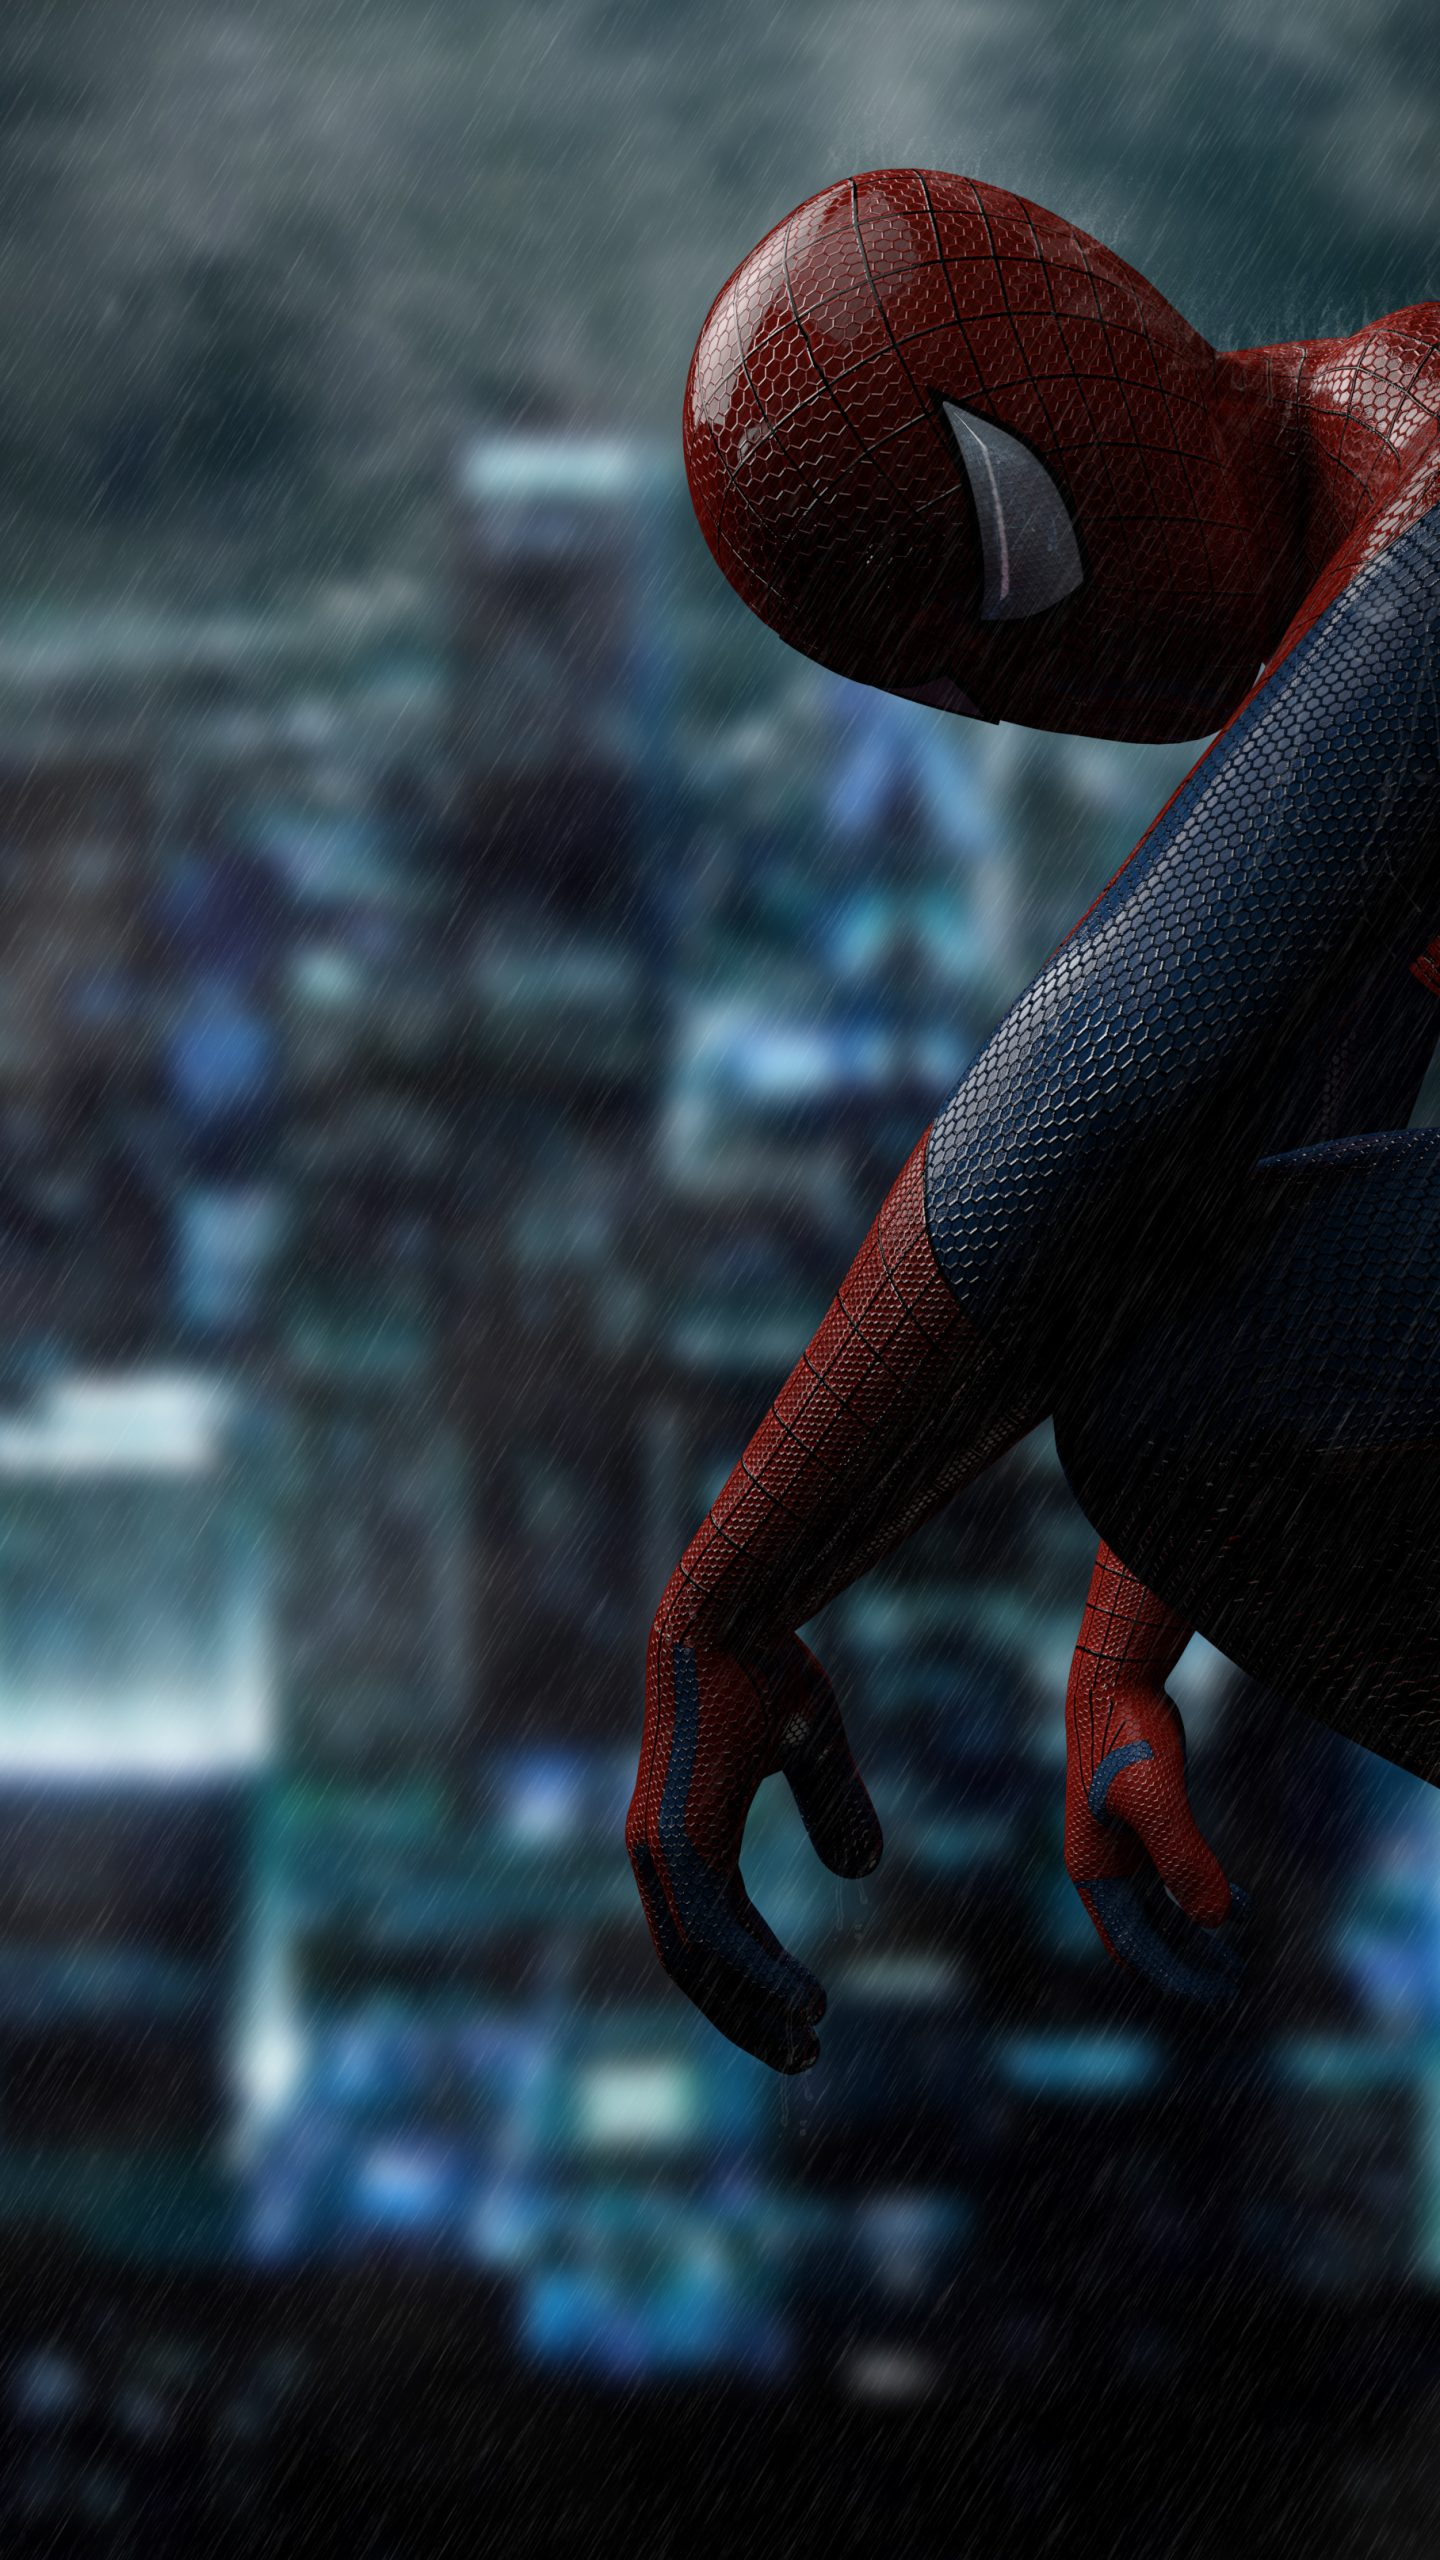 4k wallpaper for mobile spiderman | simplexpict1st